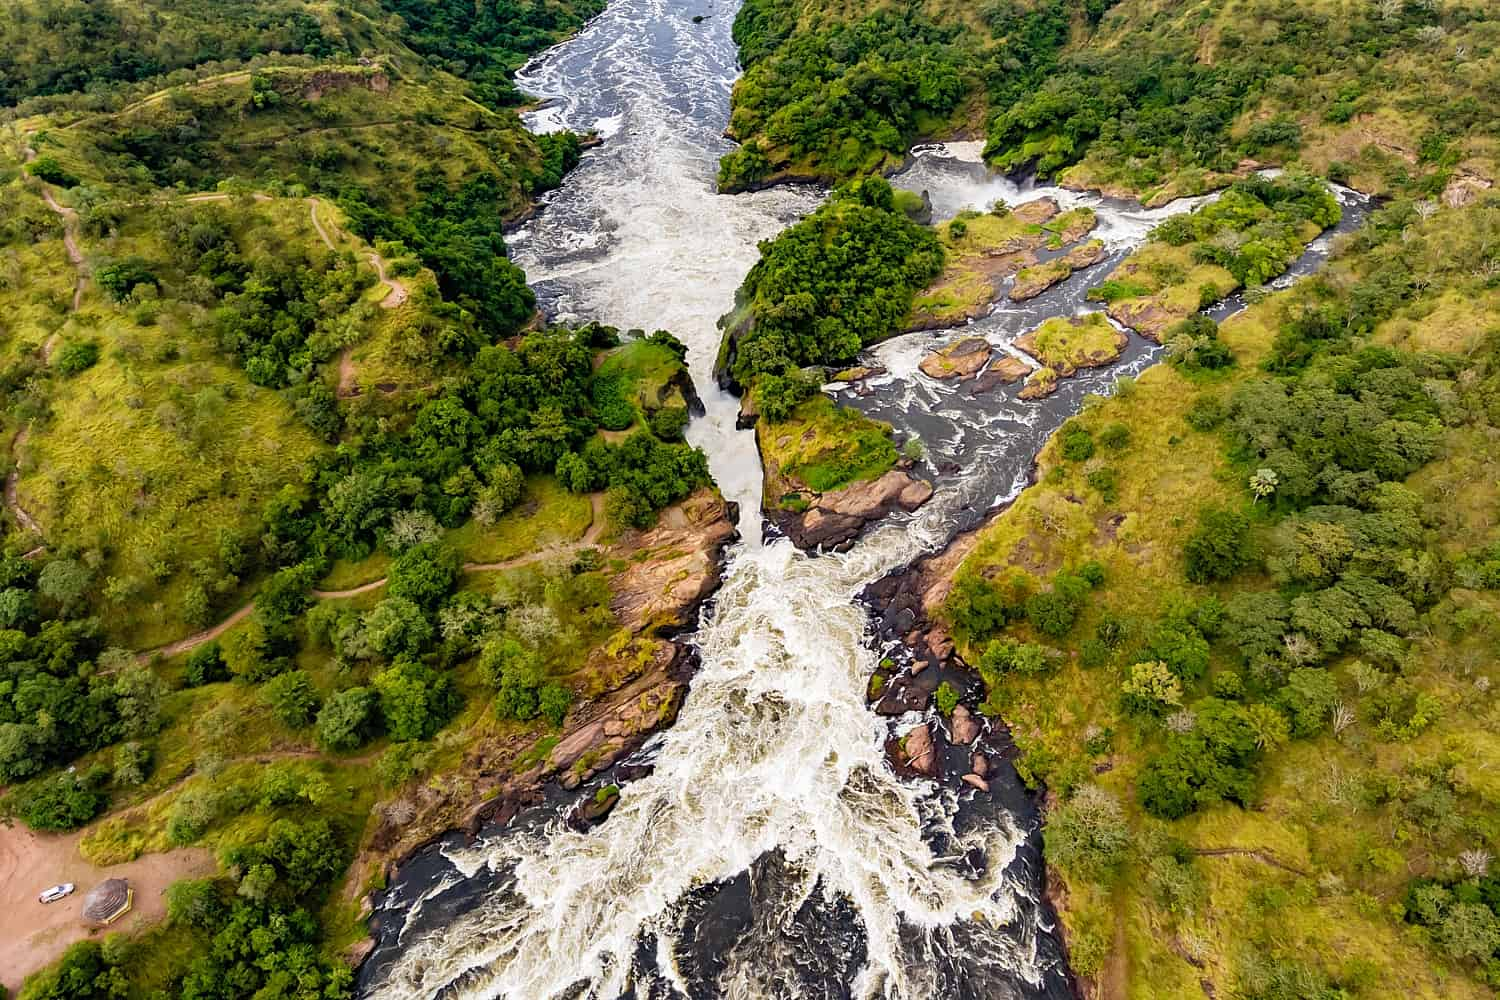 Hiking To The Top Of Murchison Falls